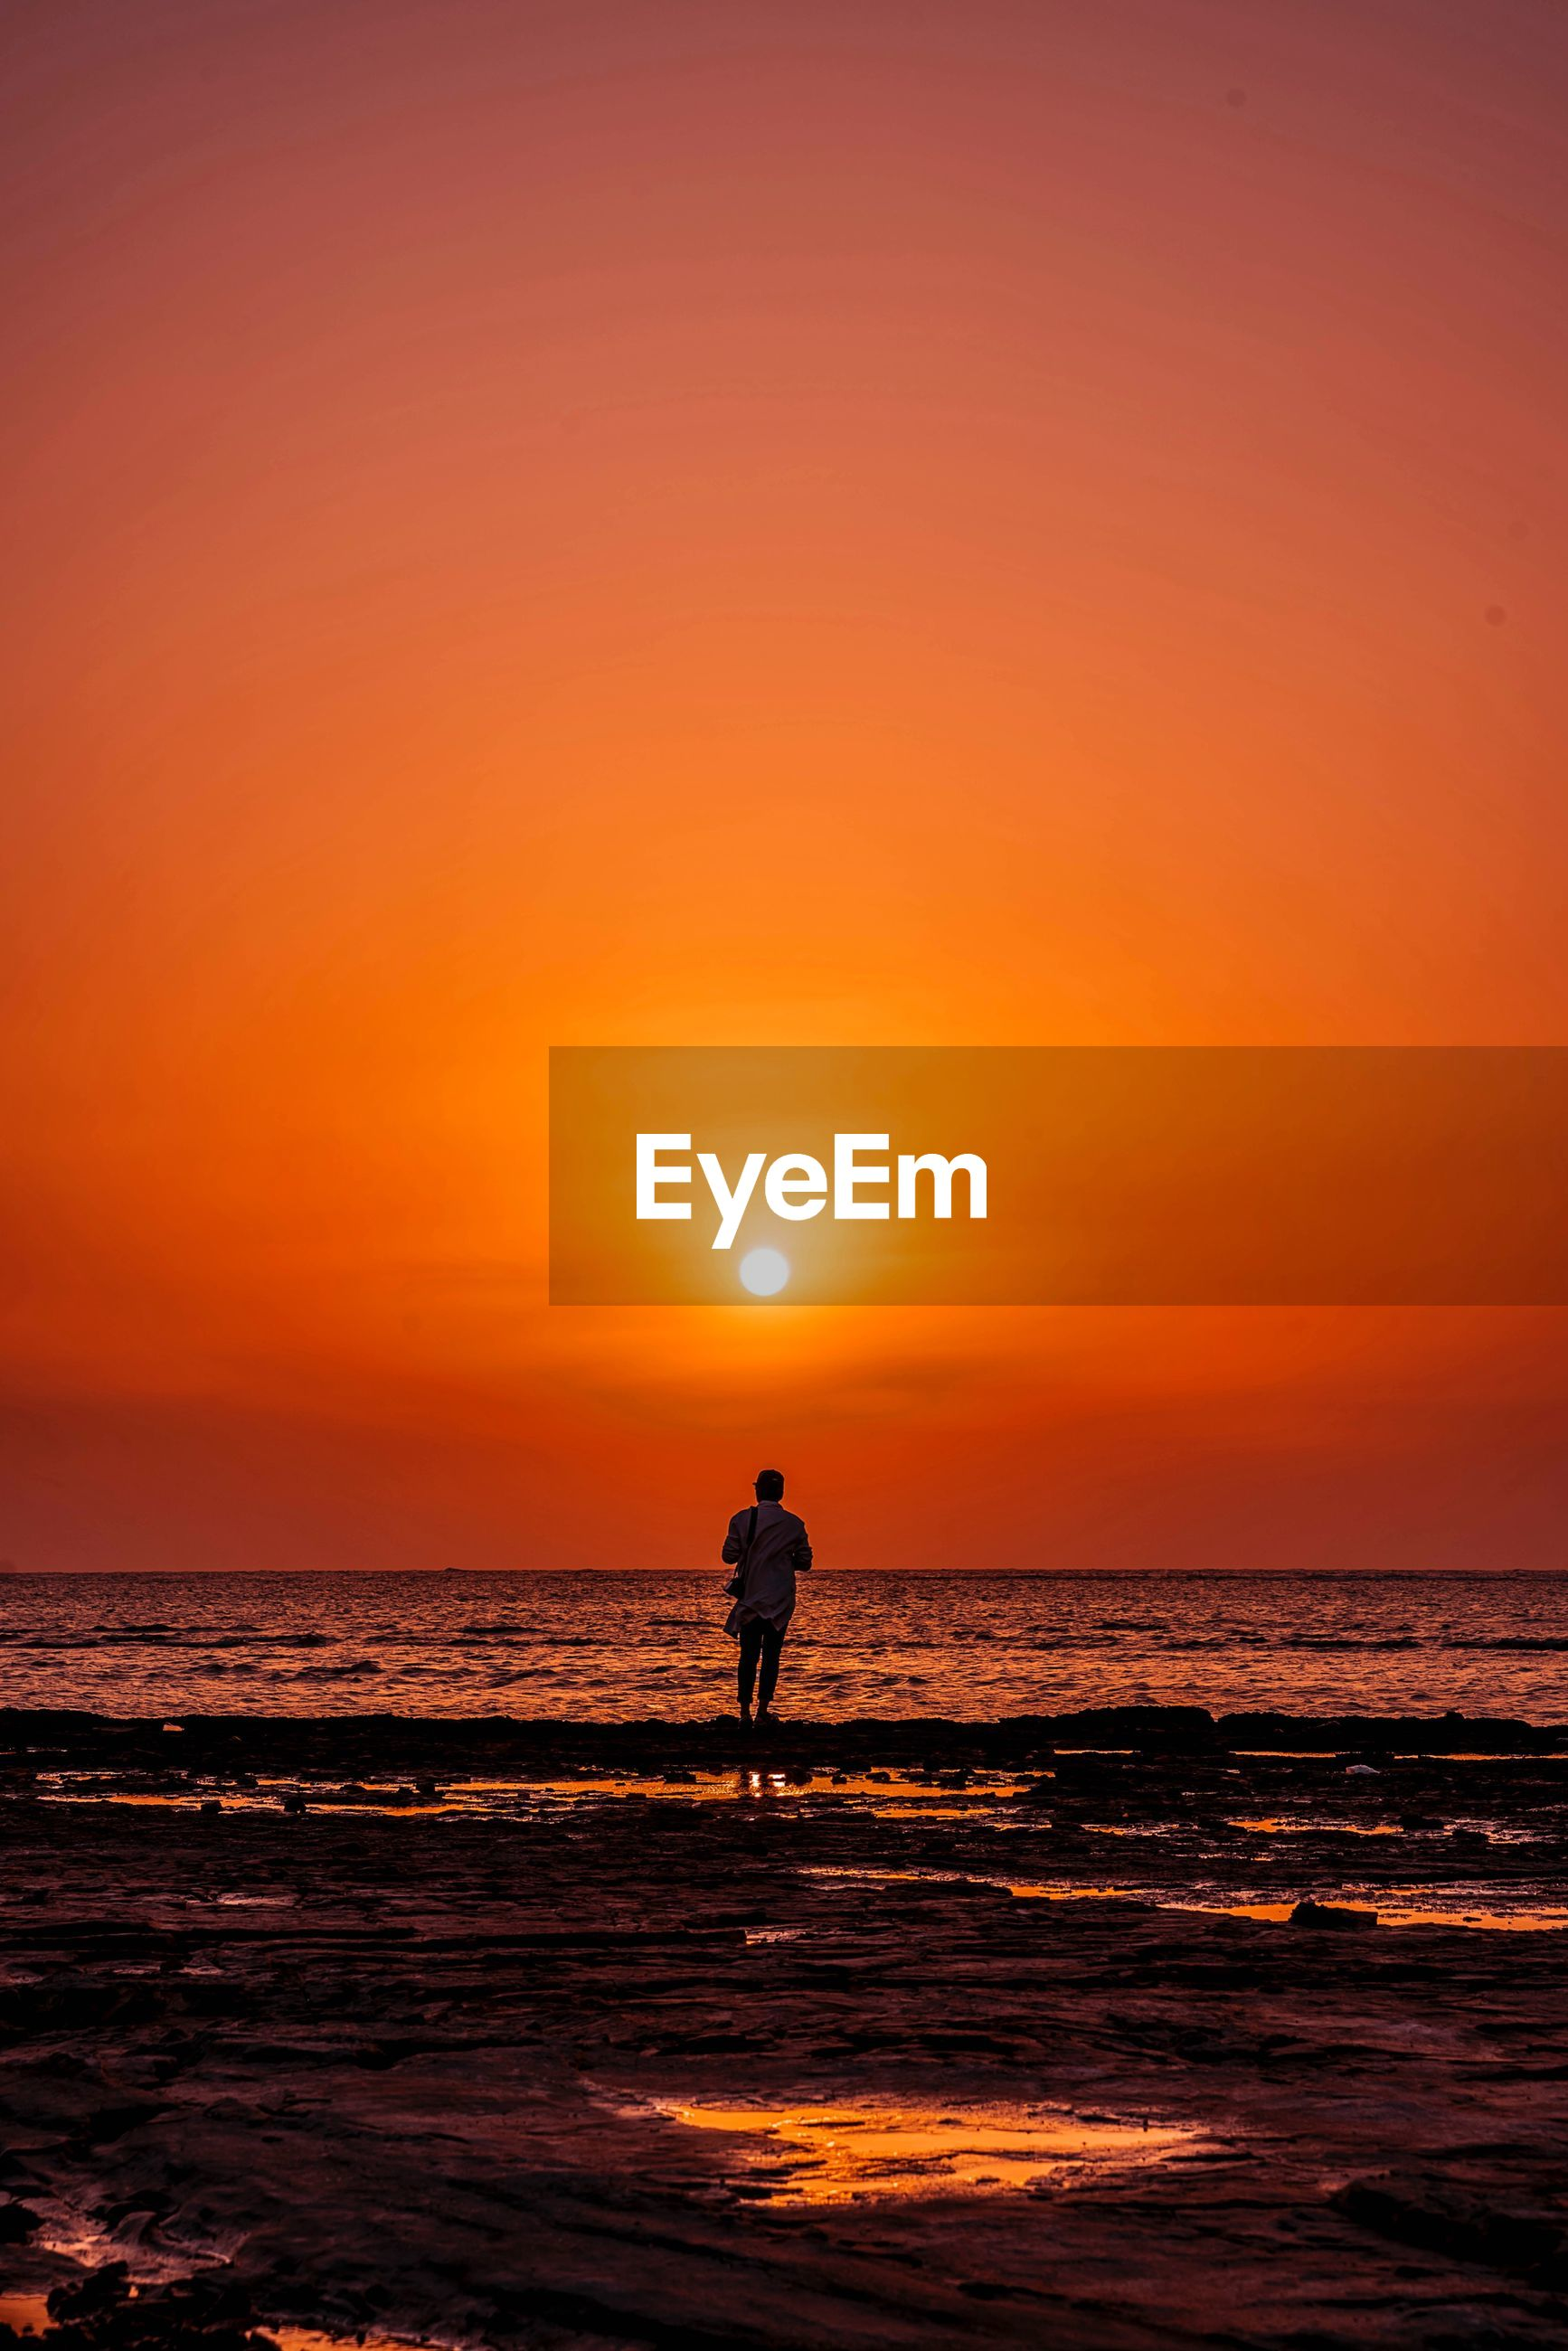 sunset, sea, sky, orange color, water, horizon over water, horizon, scenics - nature, beauty in nature, silhouette, real people, land, beach, one person, sun, lifestyles, leisure activity, nature, full length, outdoors